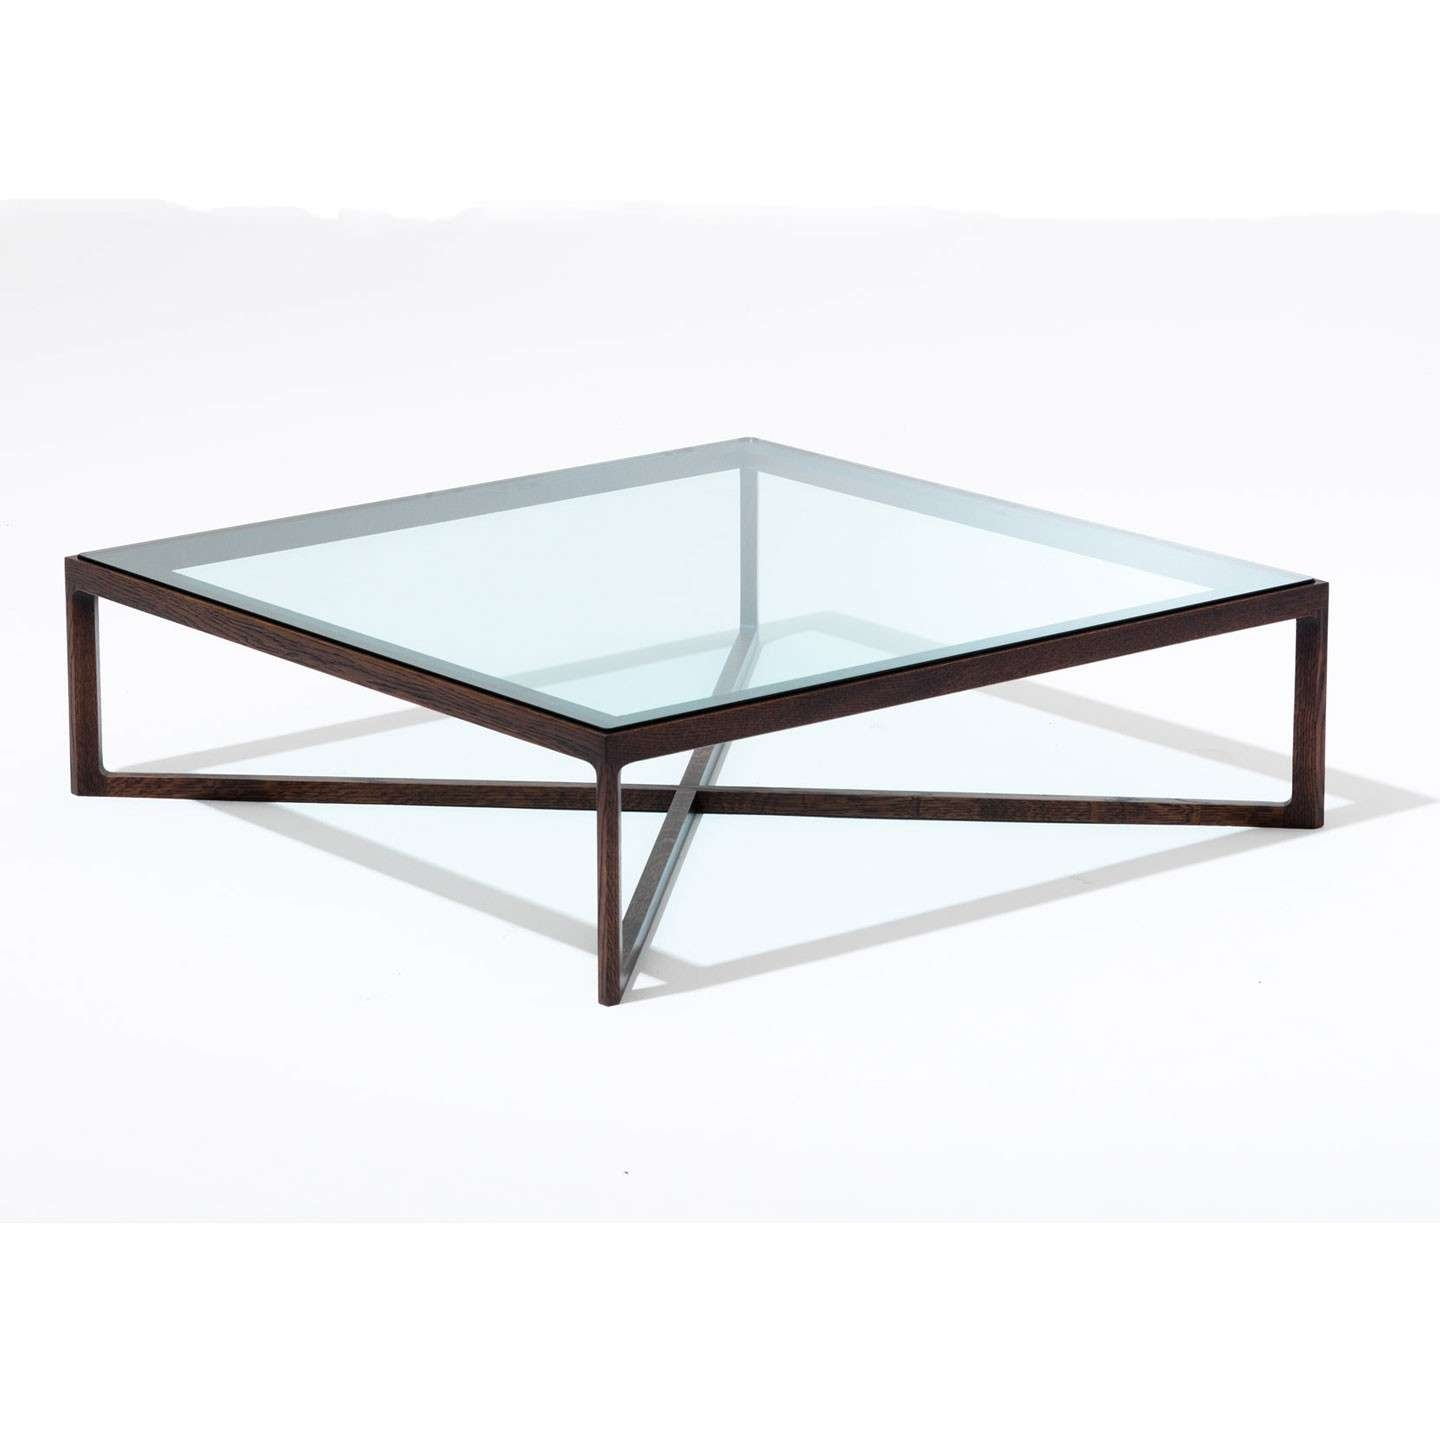 Astonishing Glass Top Coffee Tables Idea – Crate And Barrel Within Most Current Square Dark Wood Coffee Tables (View 19 of 20)